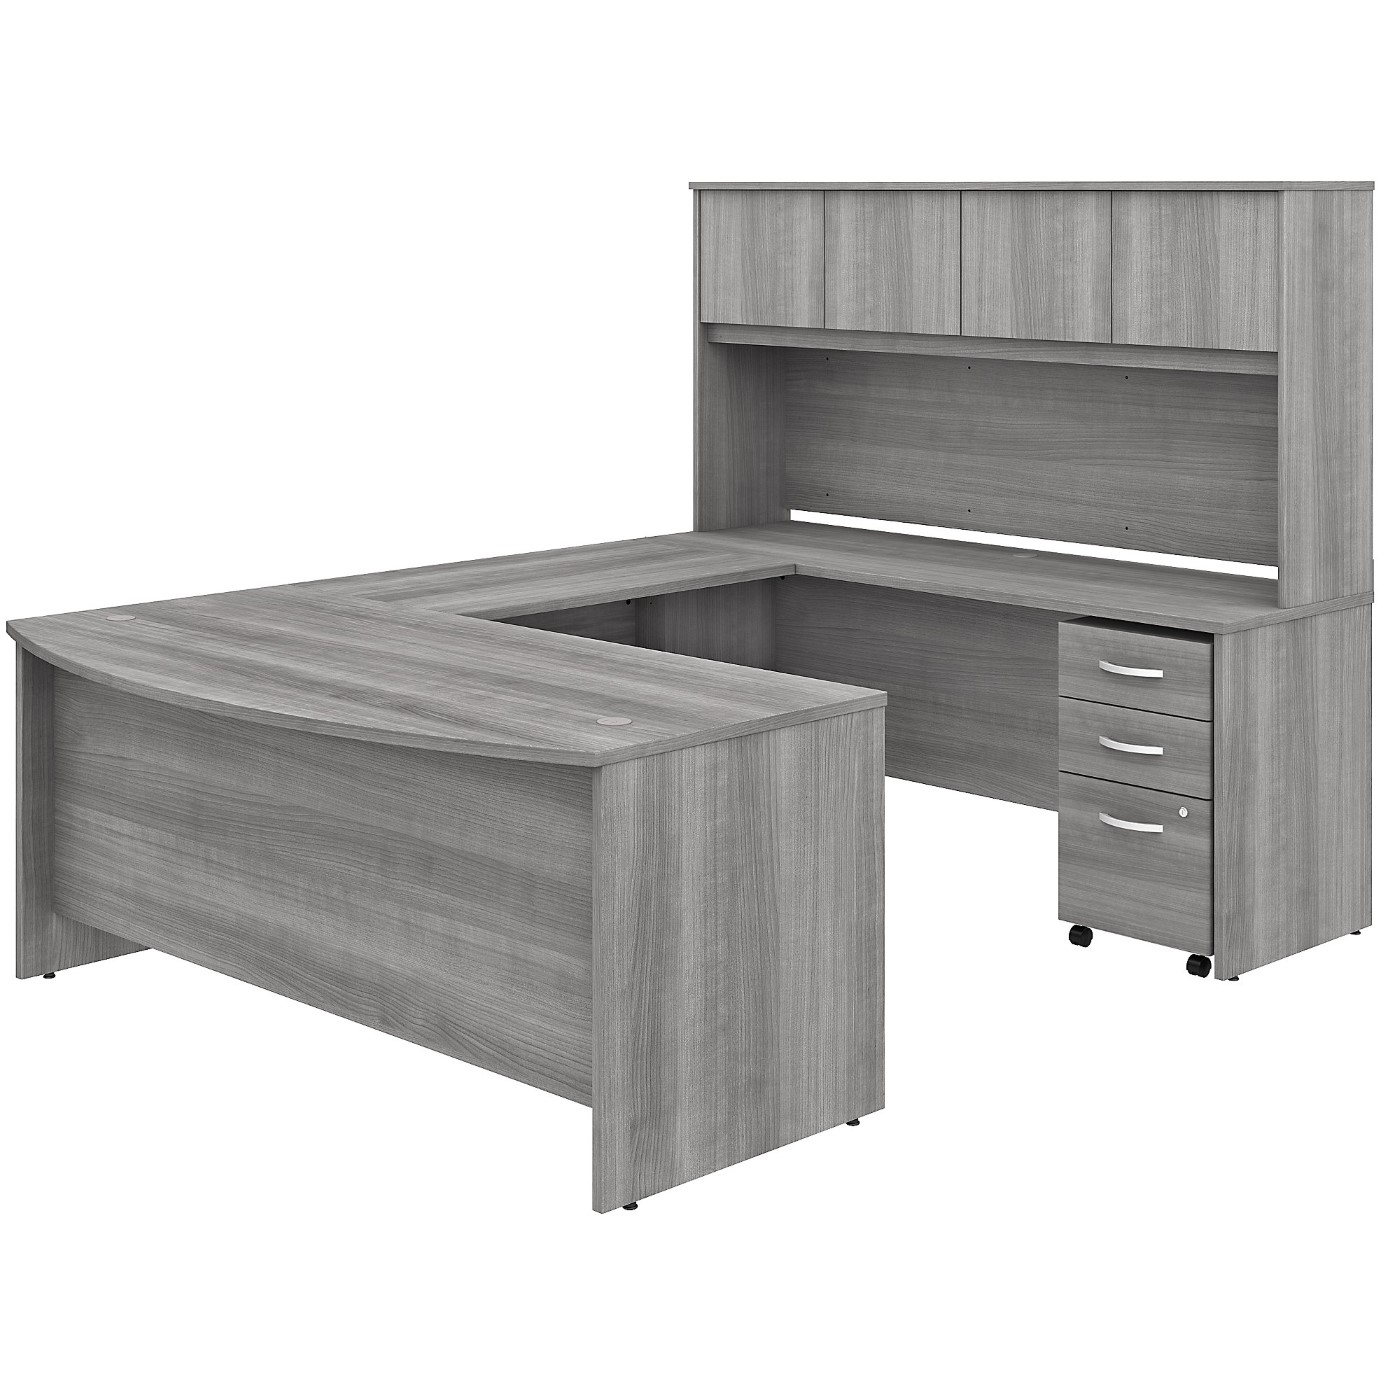 BUSH BUSINESS FURNITURE STUDIO C 72W X 36D U SHAPED DESK WITH HUTCH AND MOBILE FILE CABINET. FREE SHIPPING SALE DEDUCT 10% MORE ENTER '10percent' IN COUPON CODE BOX WHILE CHECKING OUT.